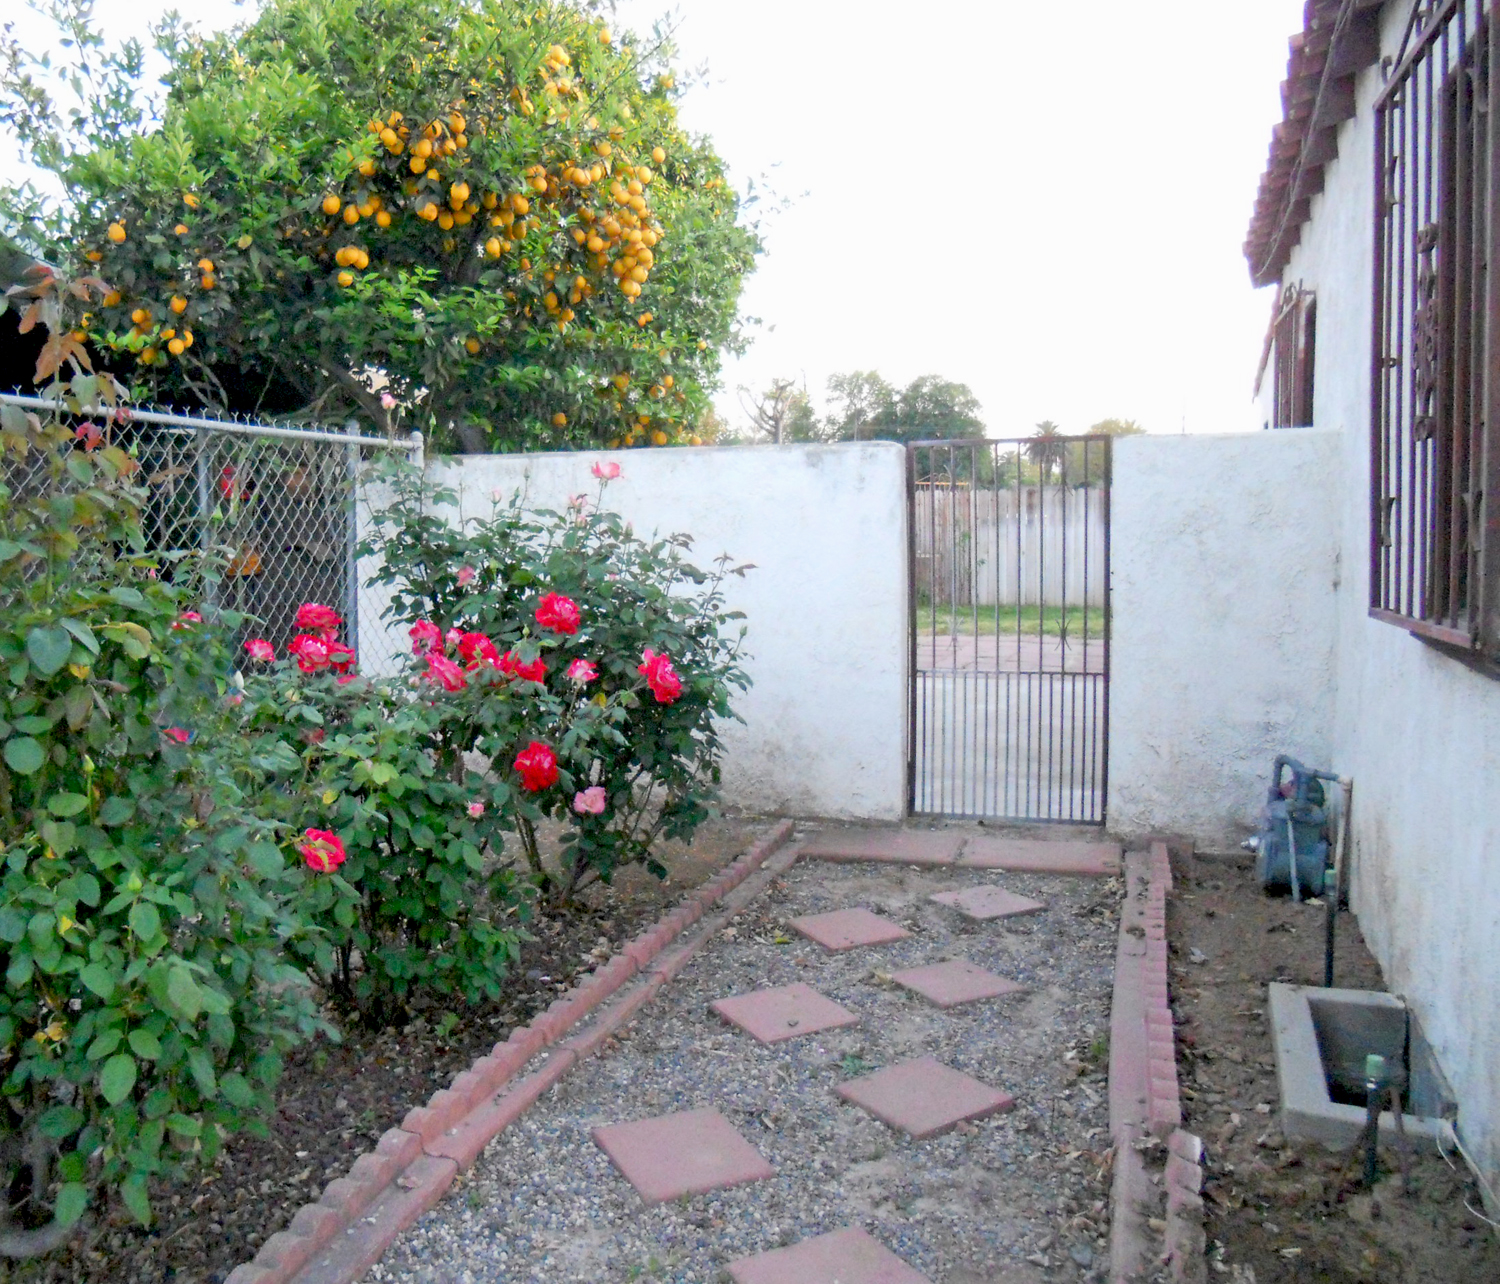 Entrance to side yard with roses, pathway, and a wrought iron gate.